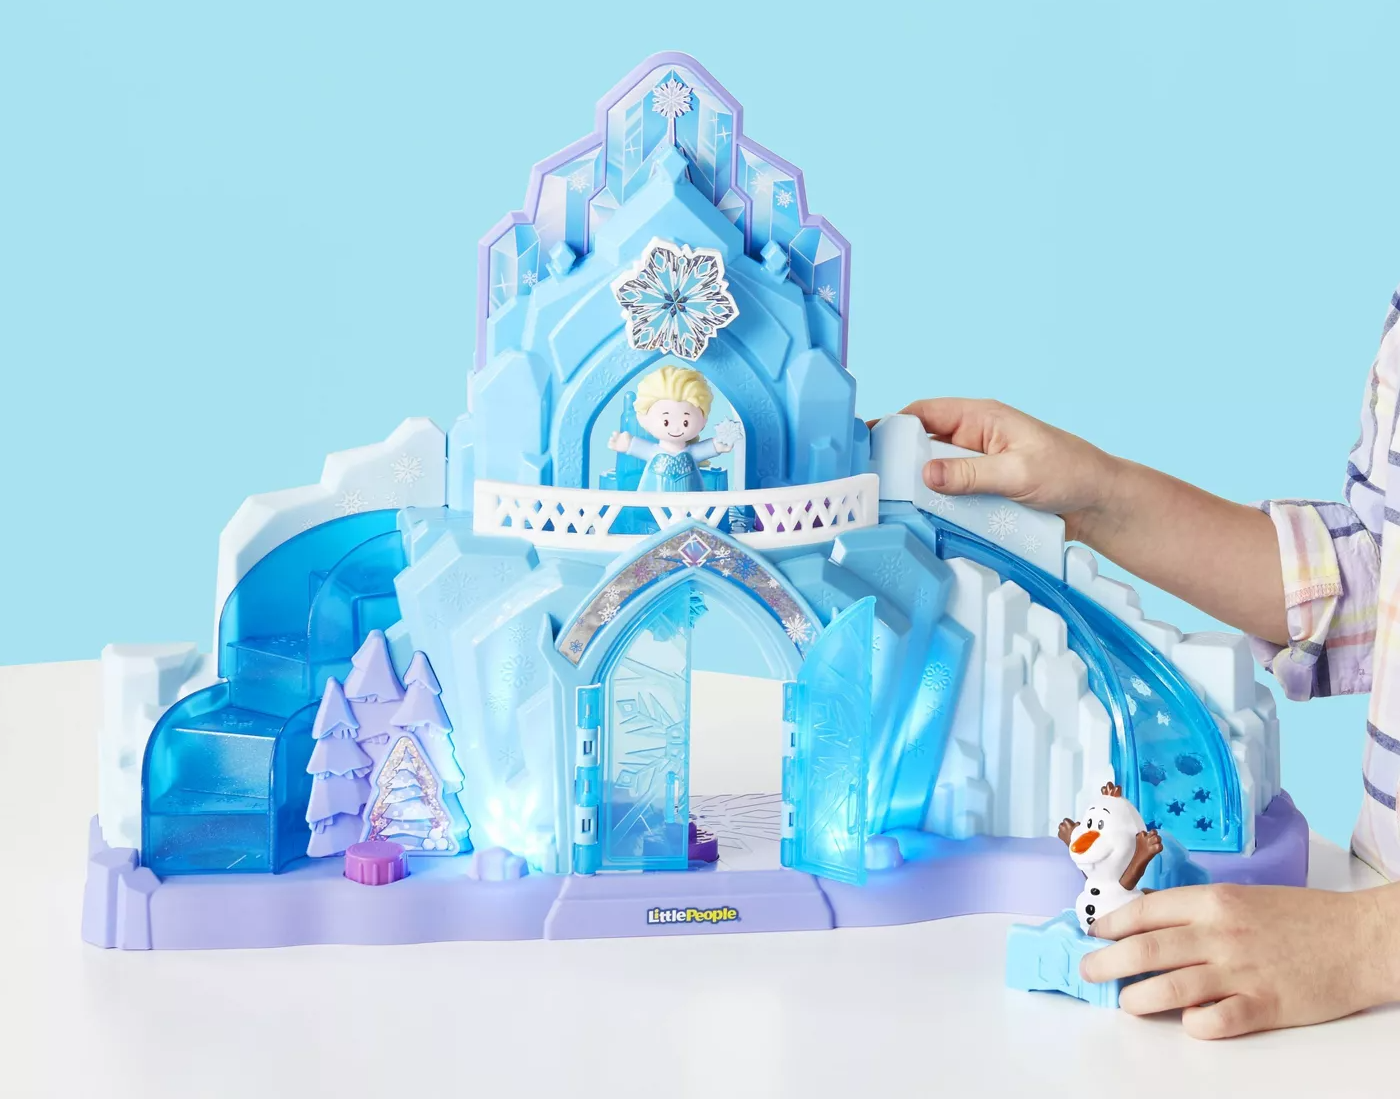 Child's hand playing with blue and purple ice castle toy and figures